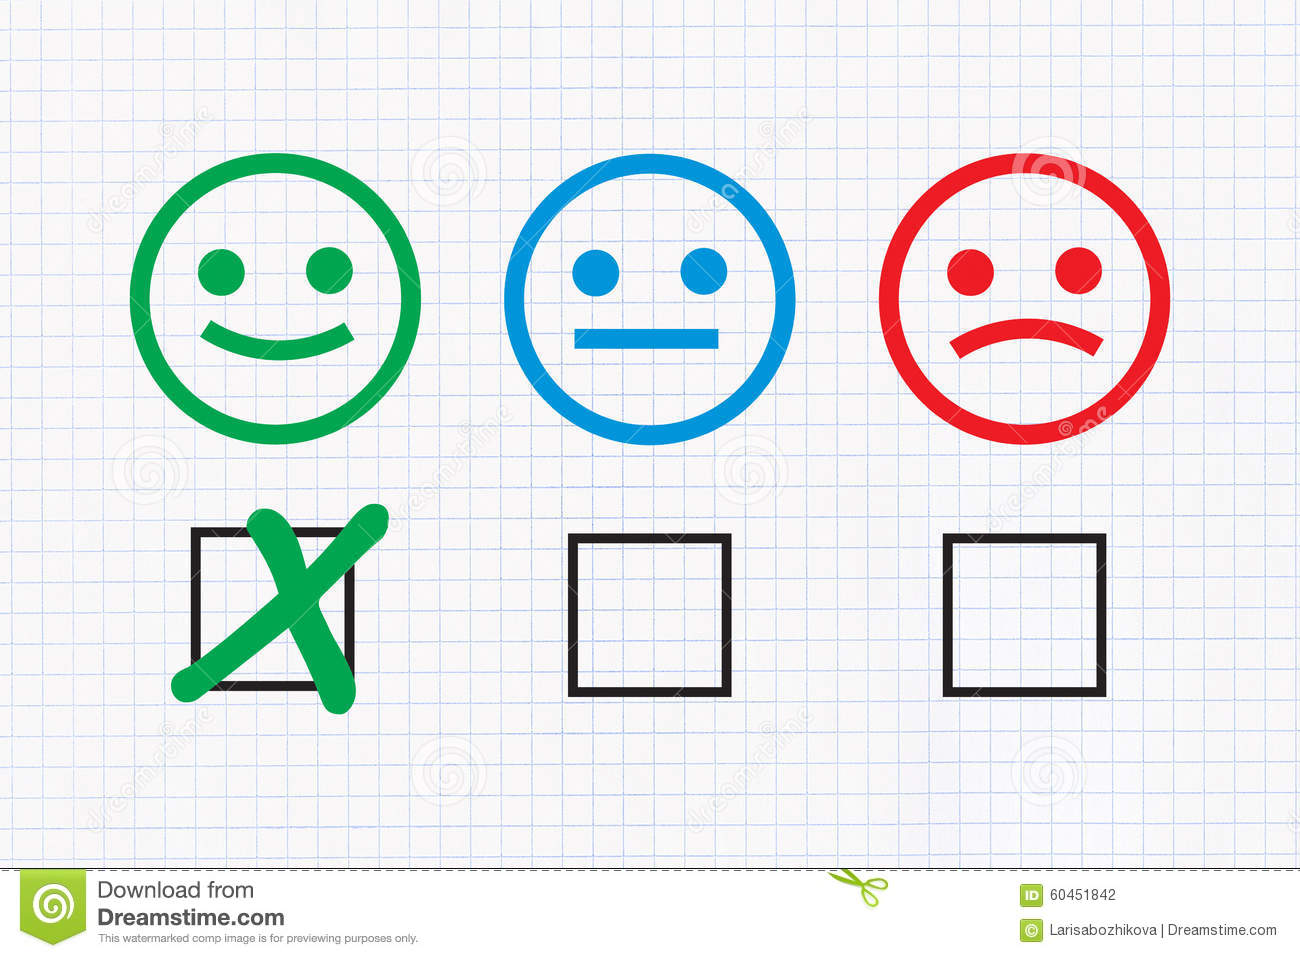 Checklist with Positive feedback on graph paper background. Happy High School Student Clipart